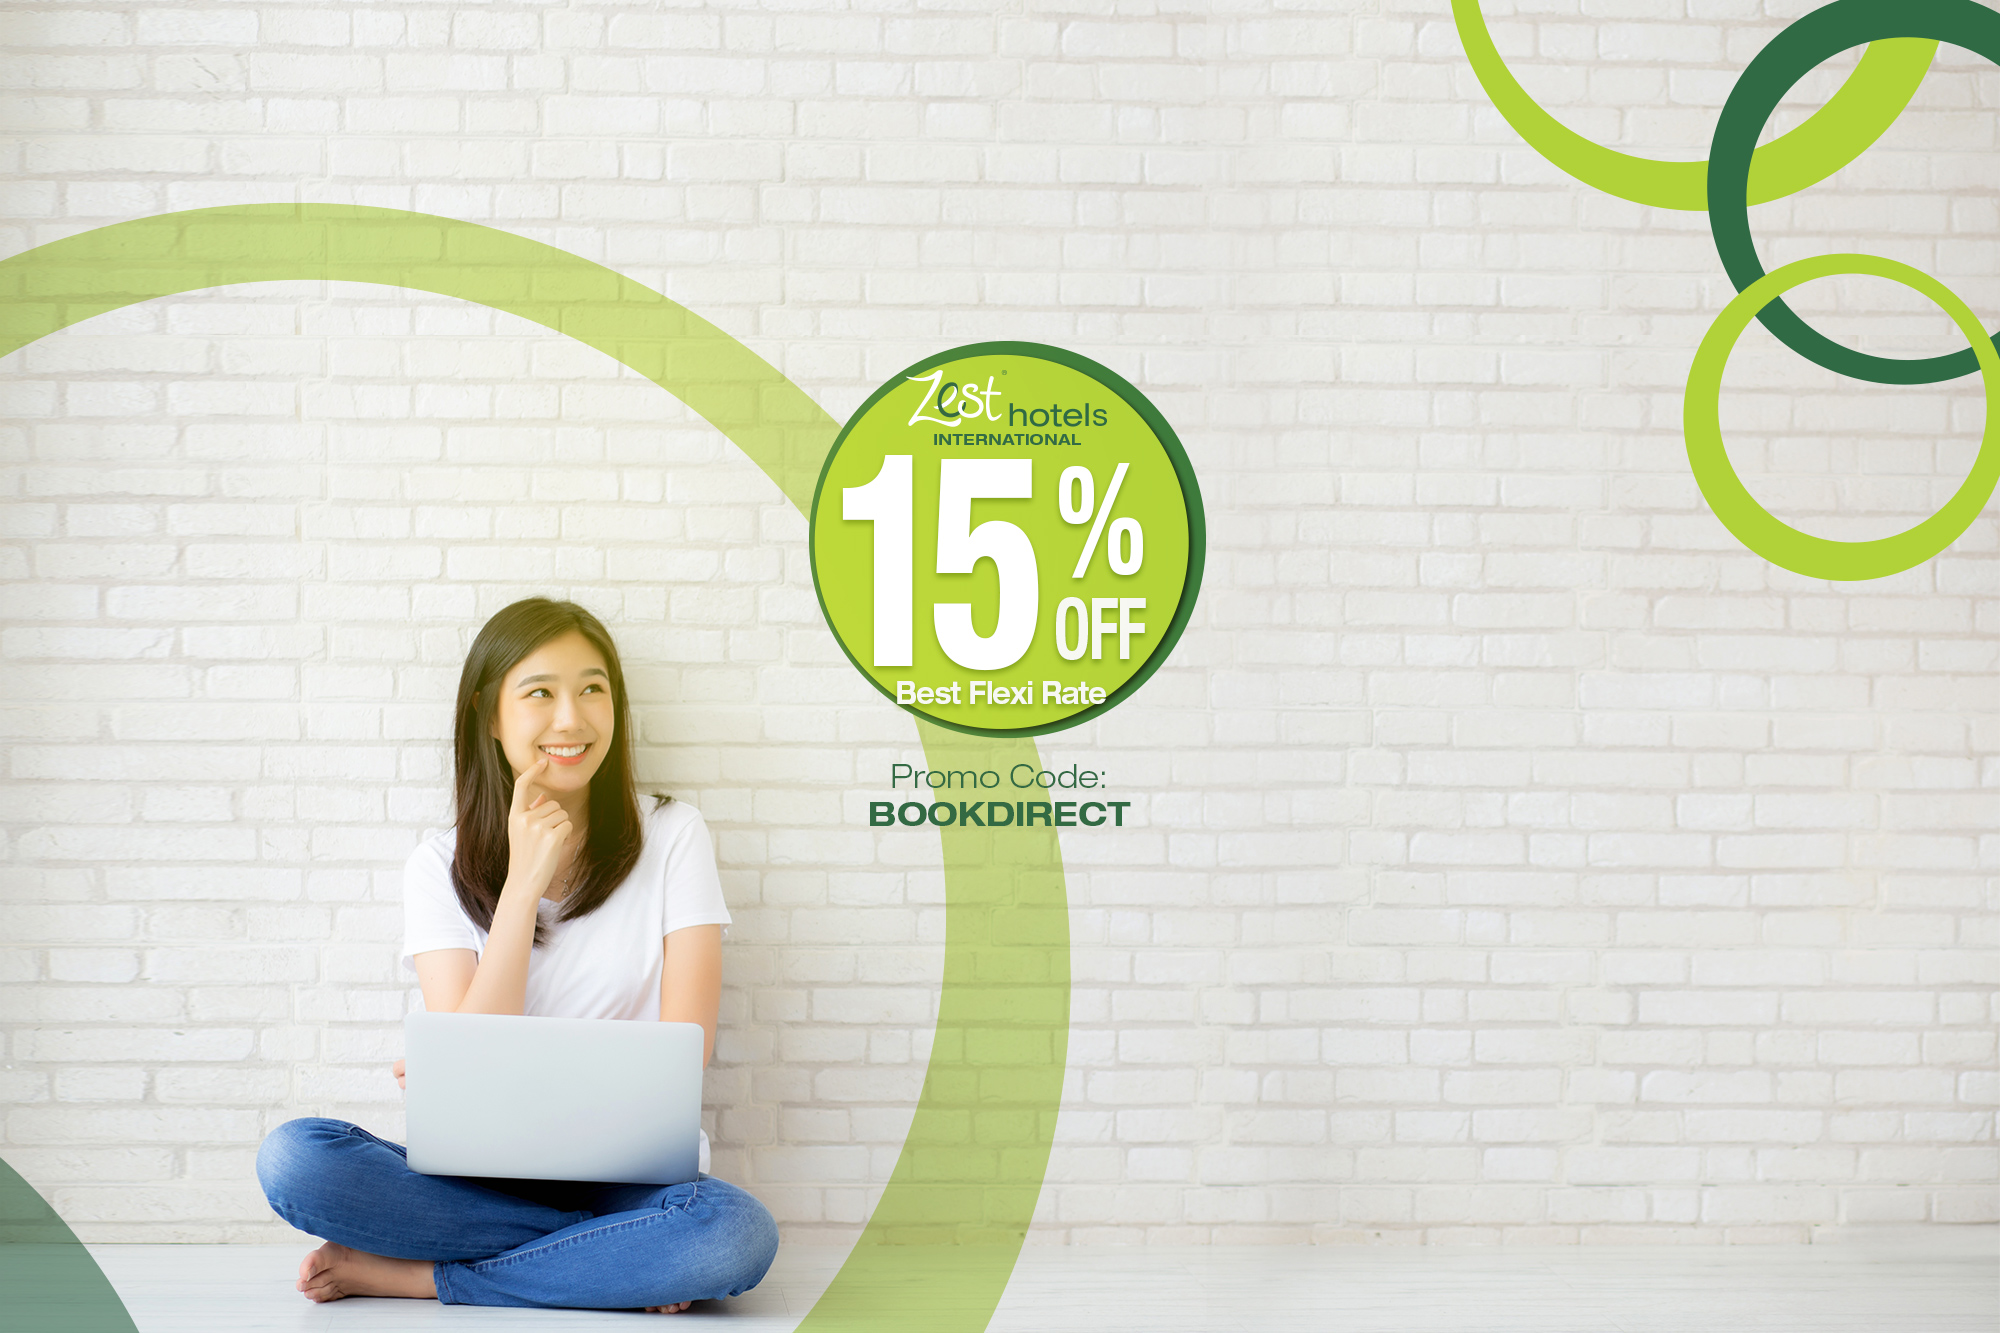 Book Now and Save an Additional 15%!